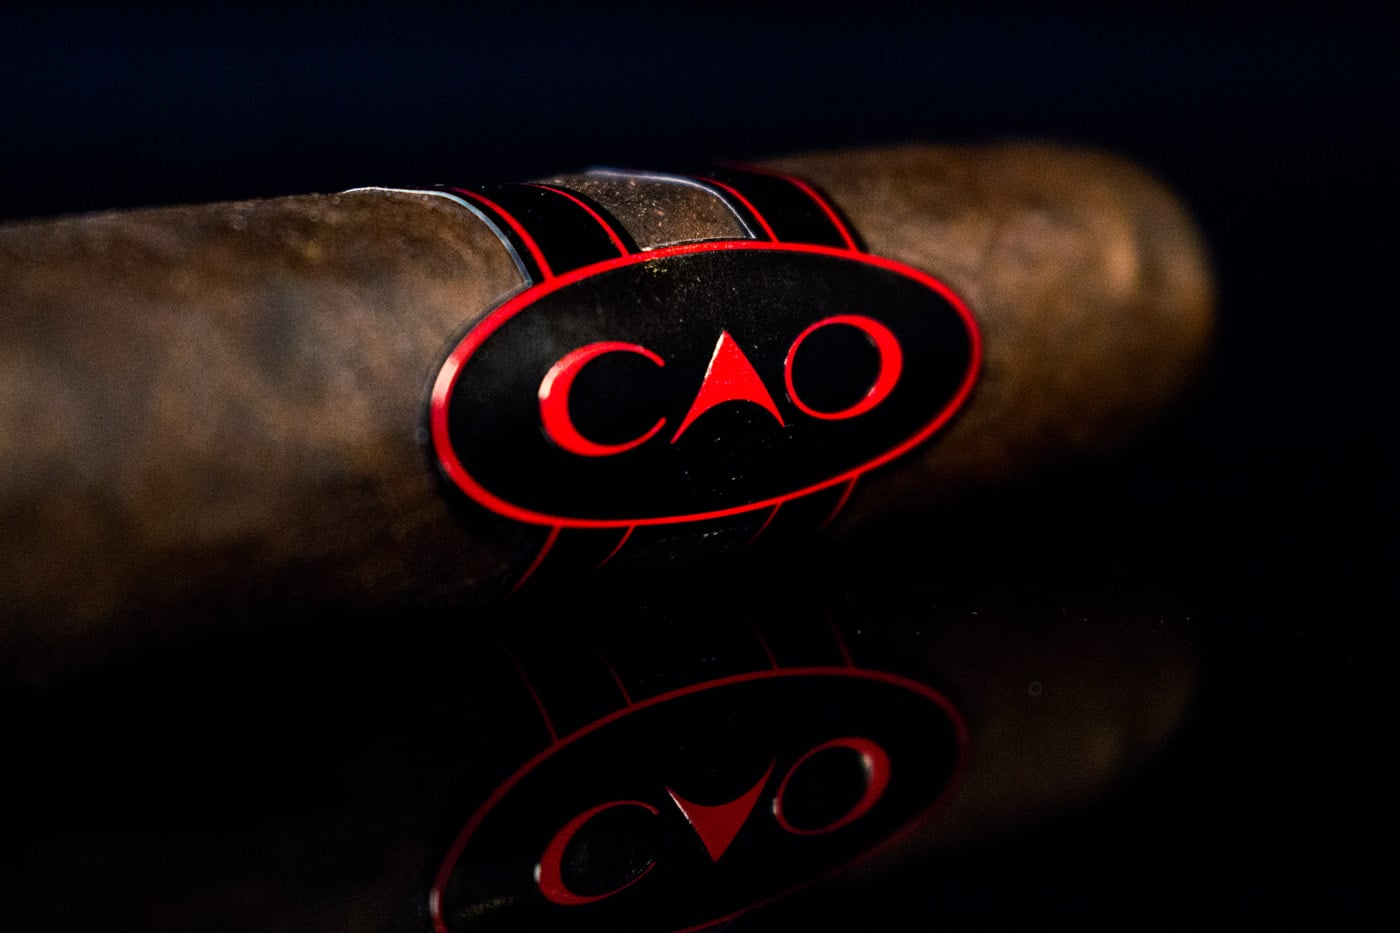 CAO Consigliere Associate robusto cigar review